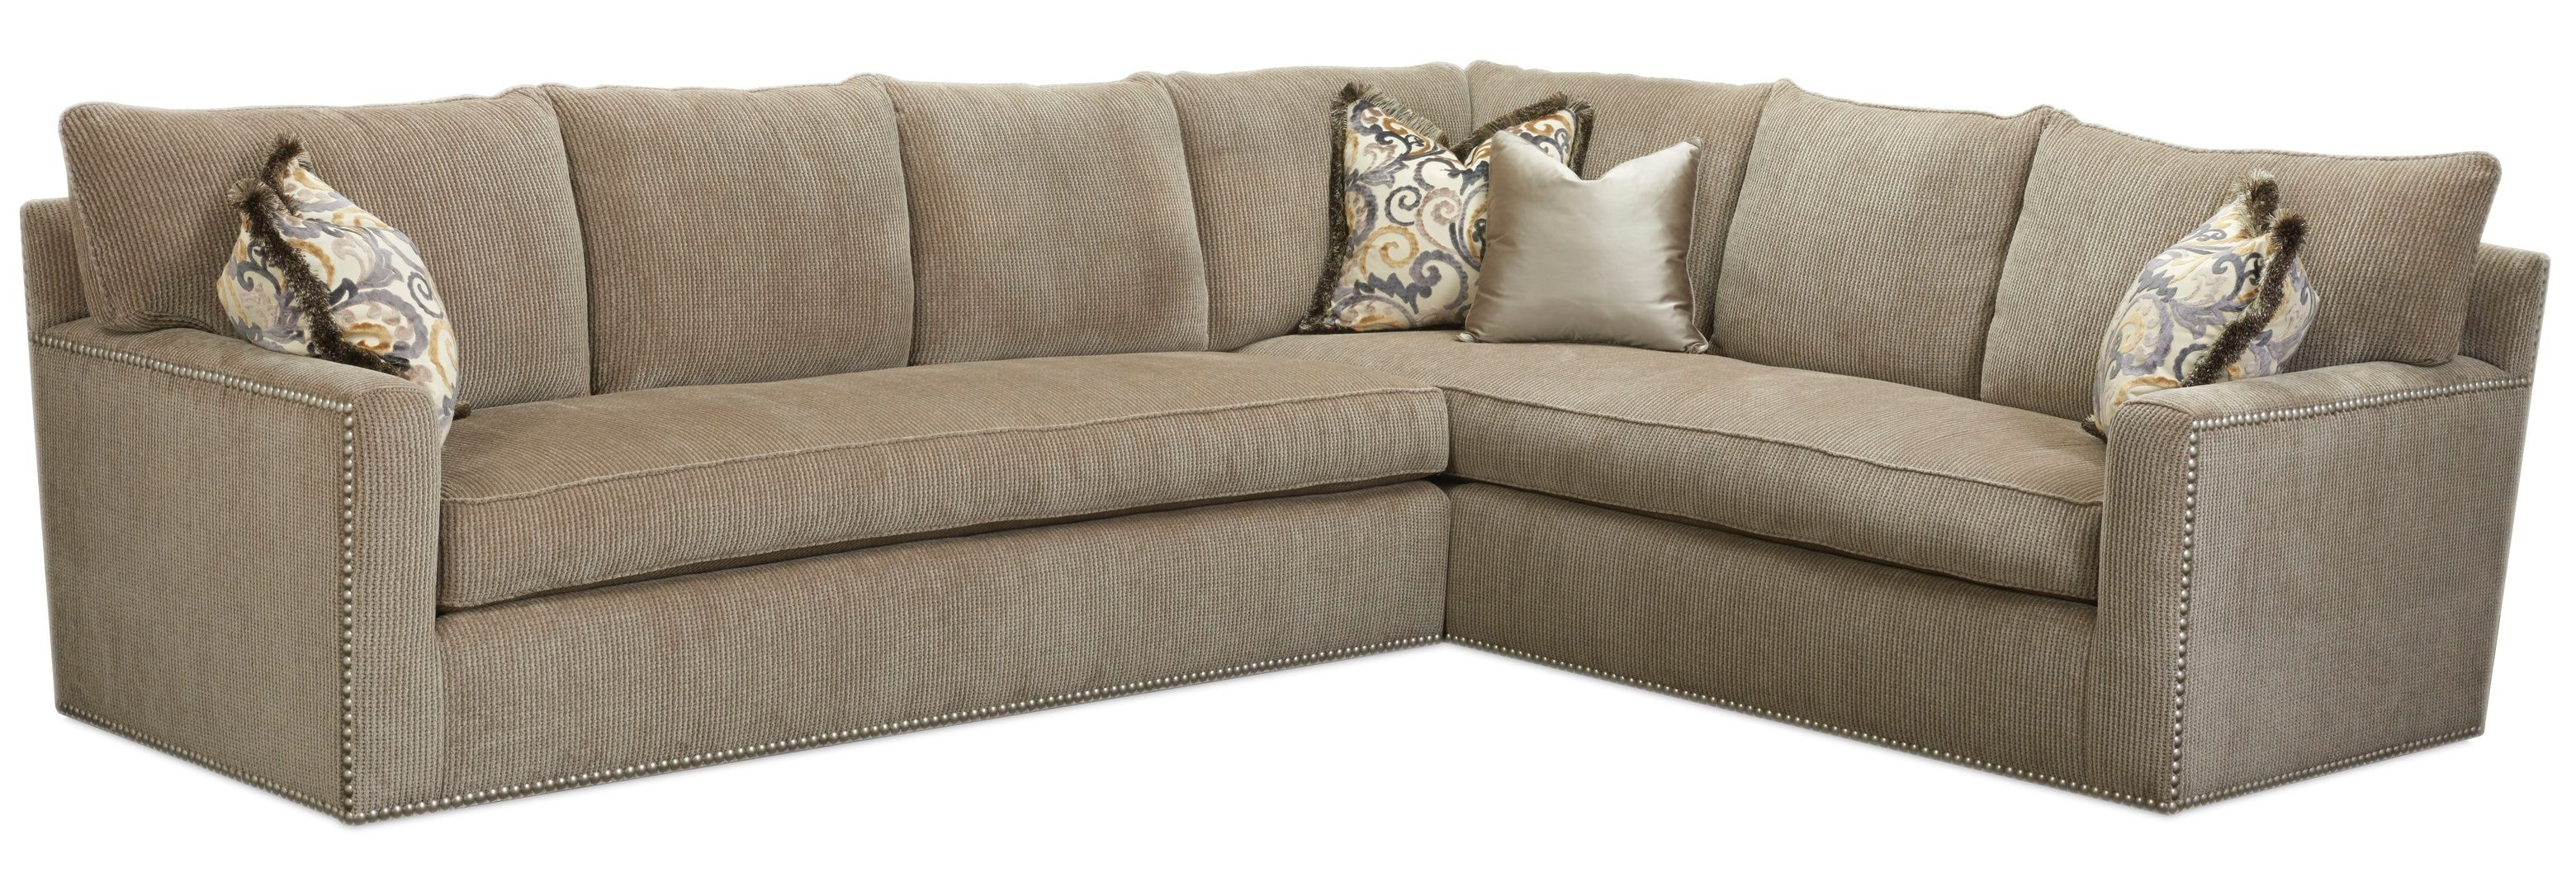 Marge Carson Santa Barbara Sectional STBSEC